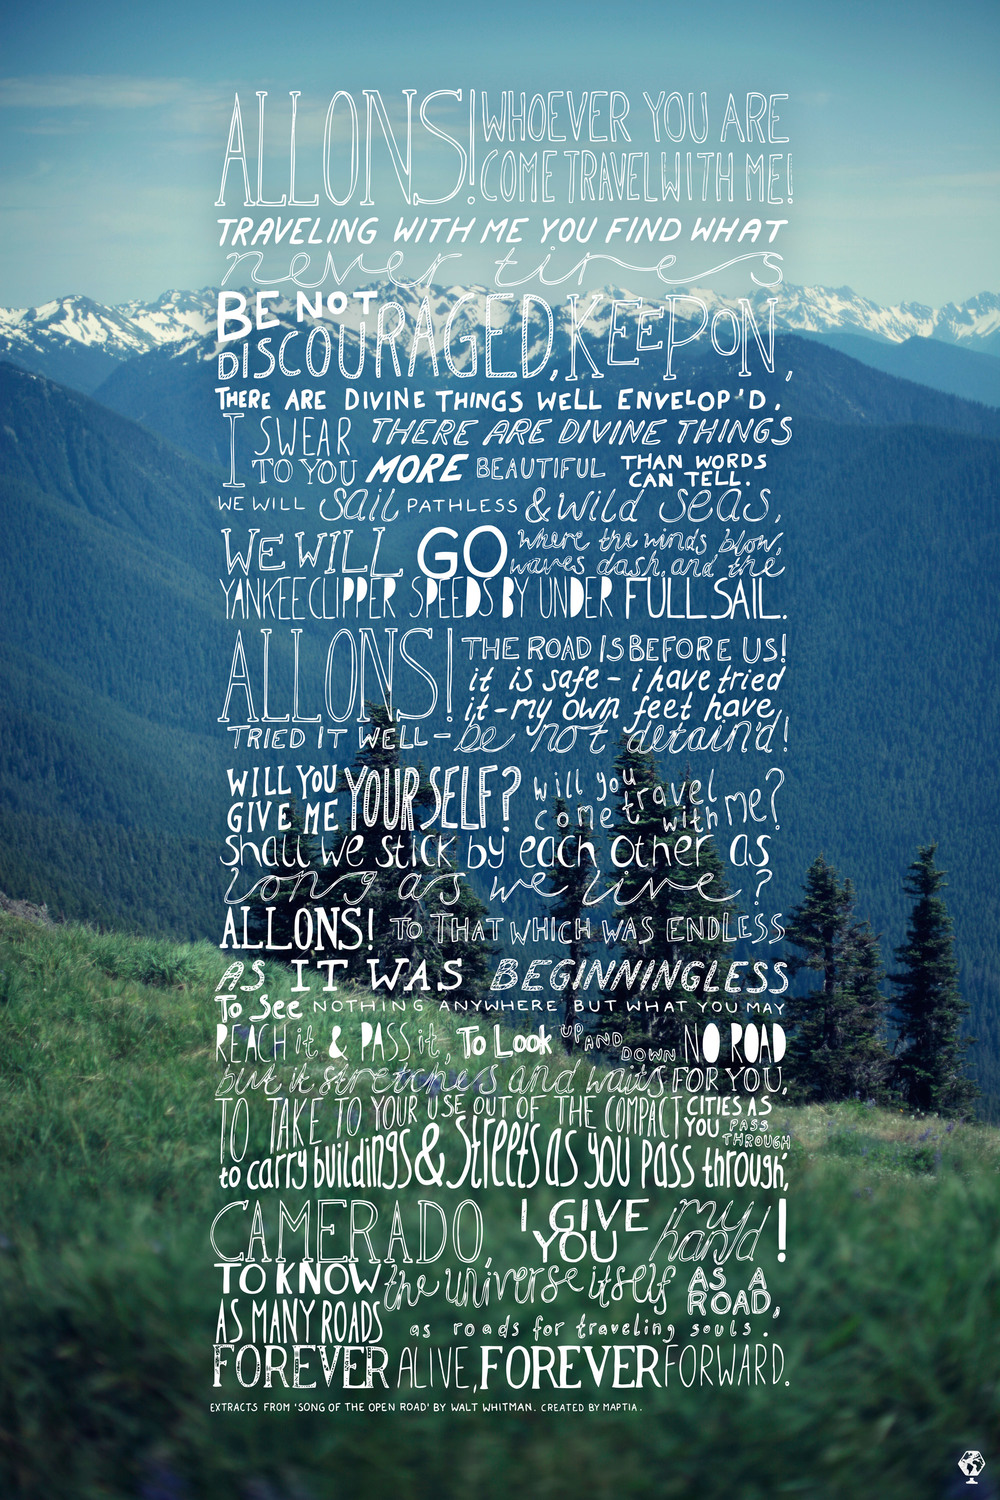 walt-whitman-poem-by-maptia-travel-inspiration.jpg